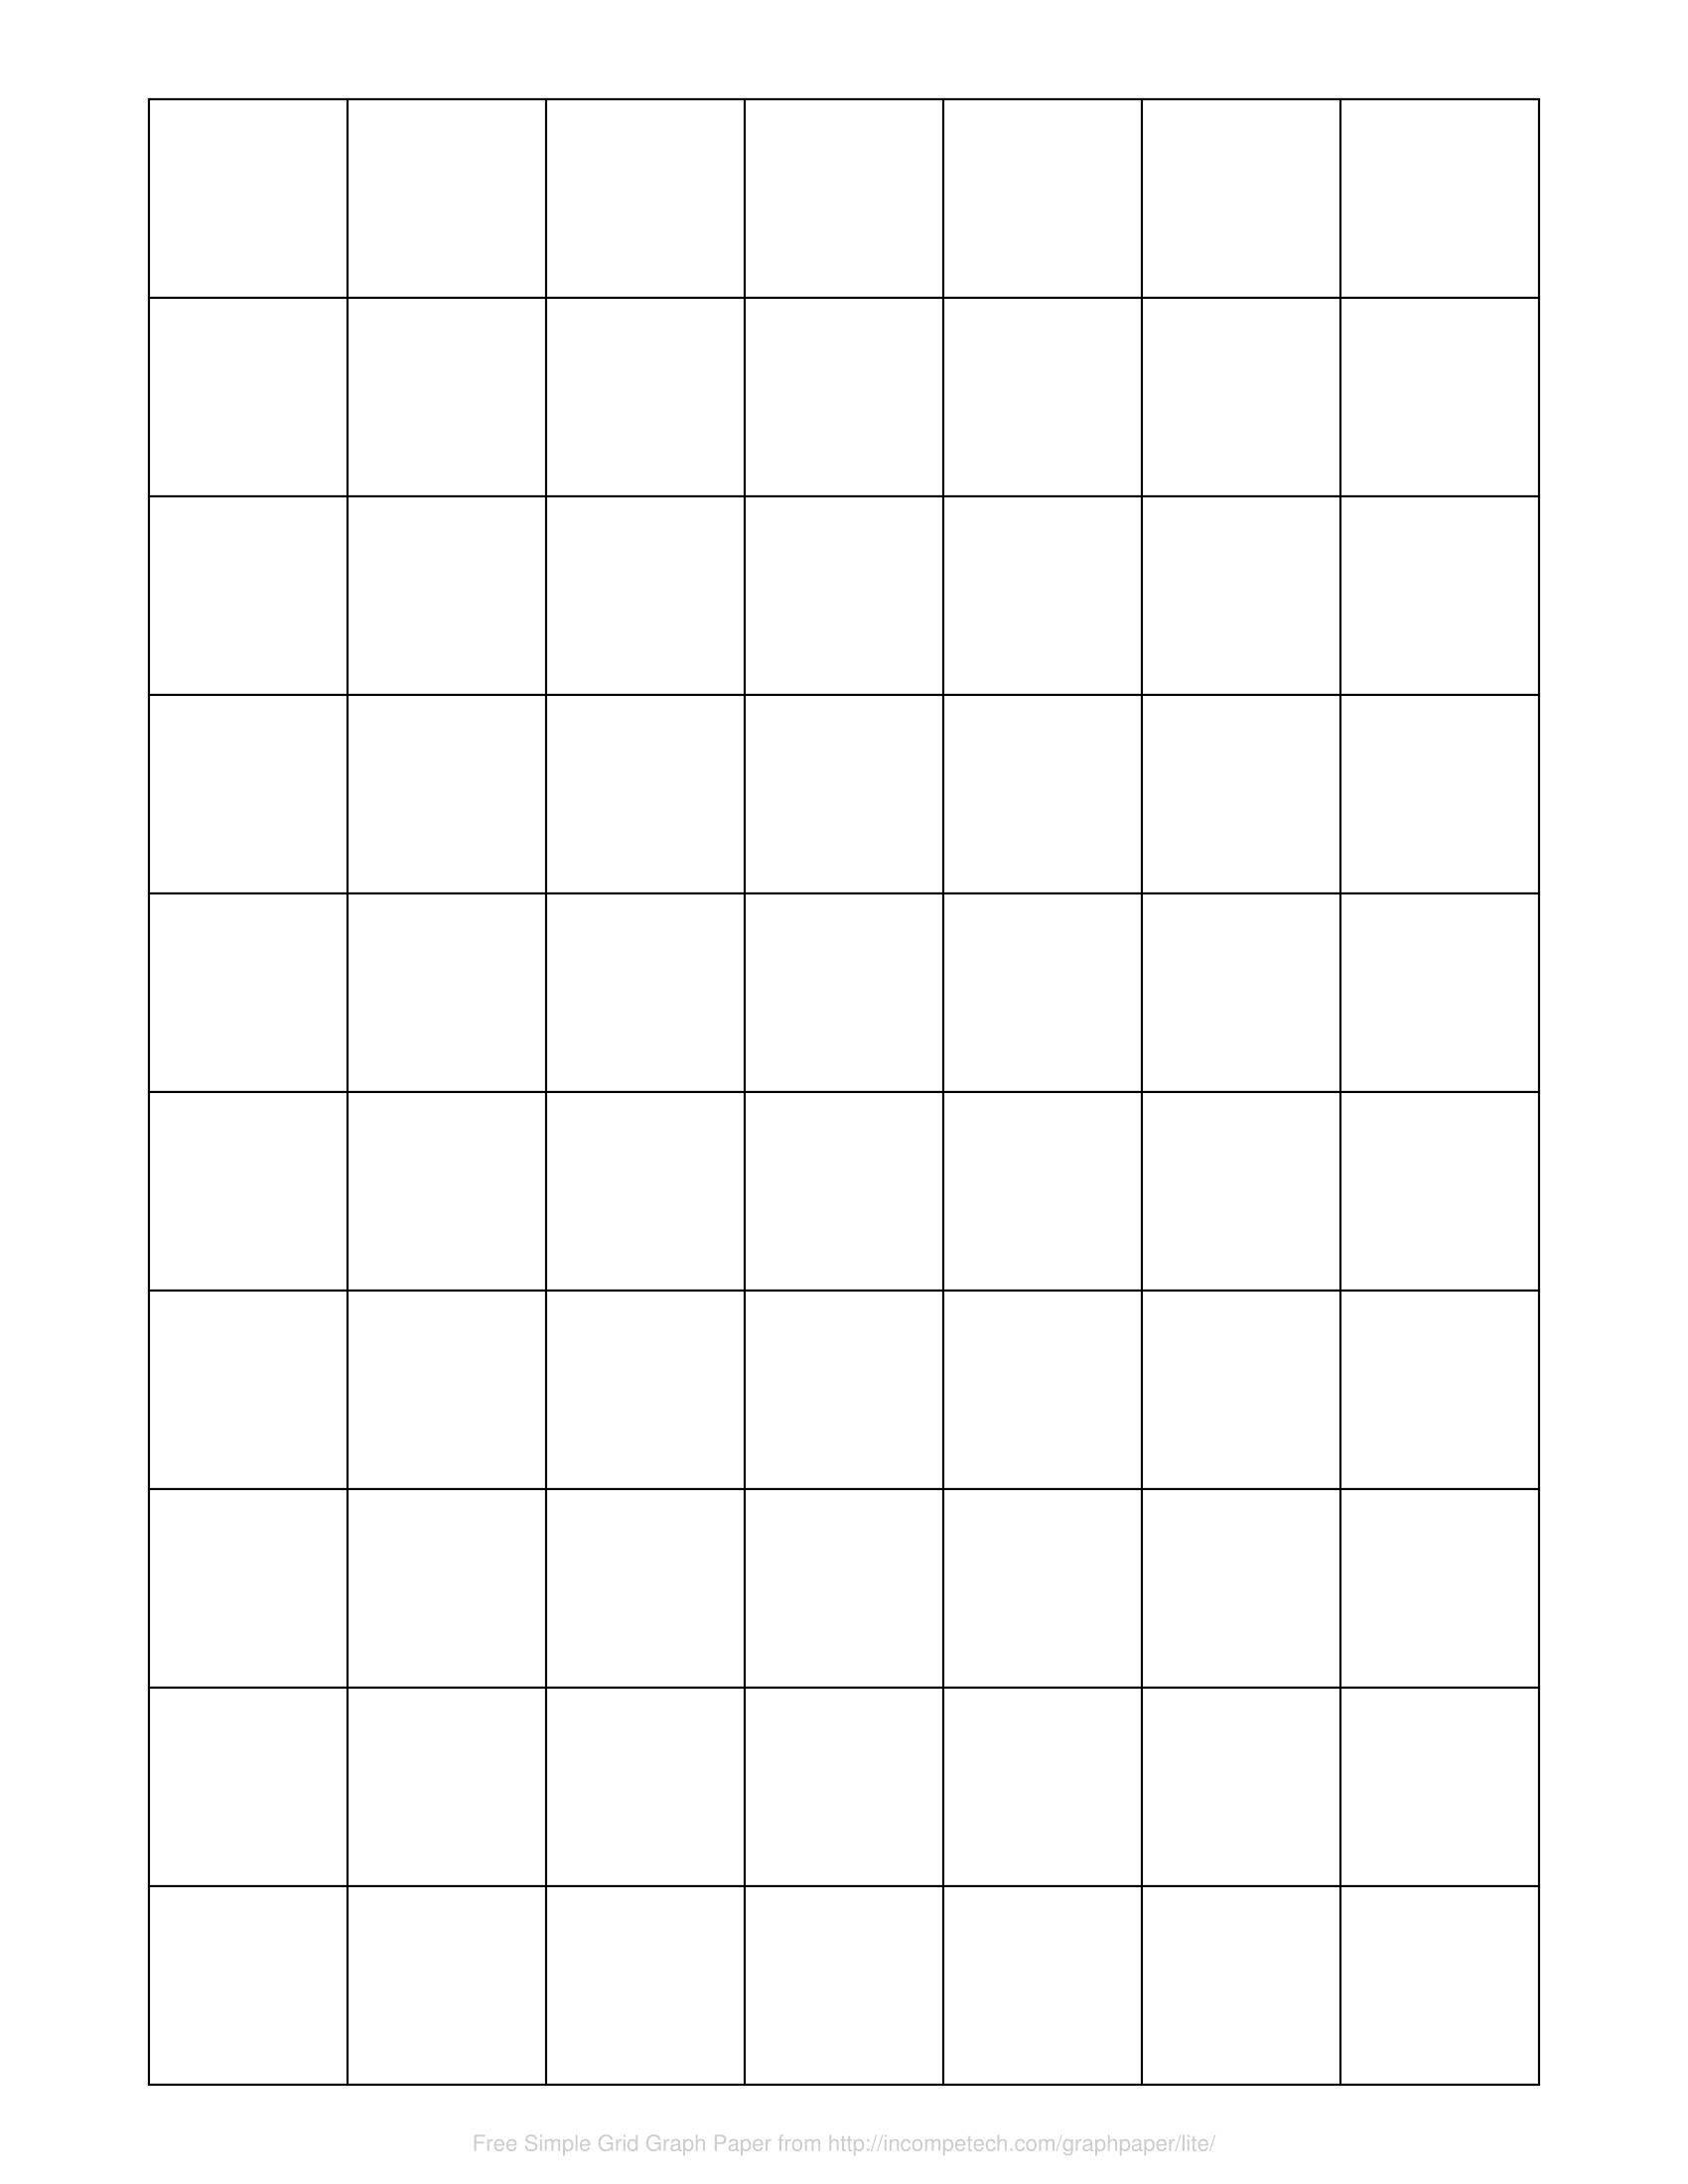 photograph relating to 10x10 Grids Printable known as Totally free On the net Graph Paper / Very simple Grid